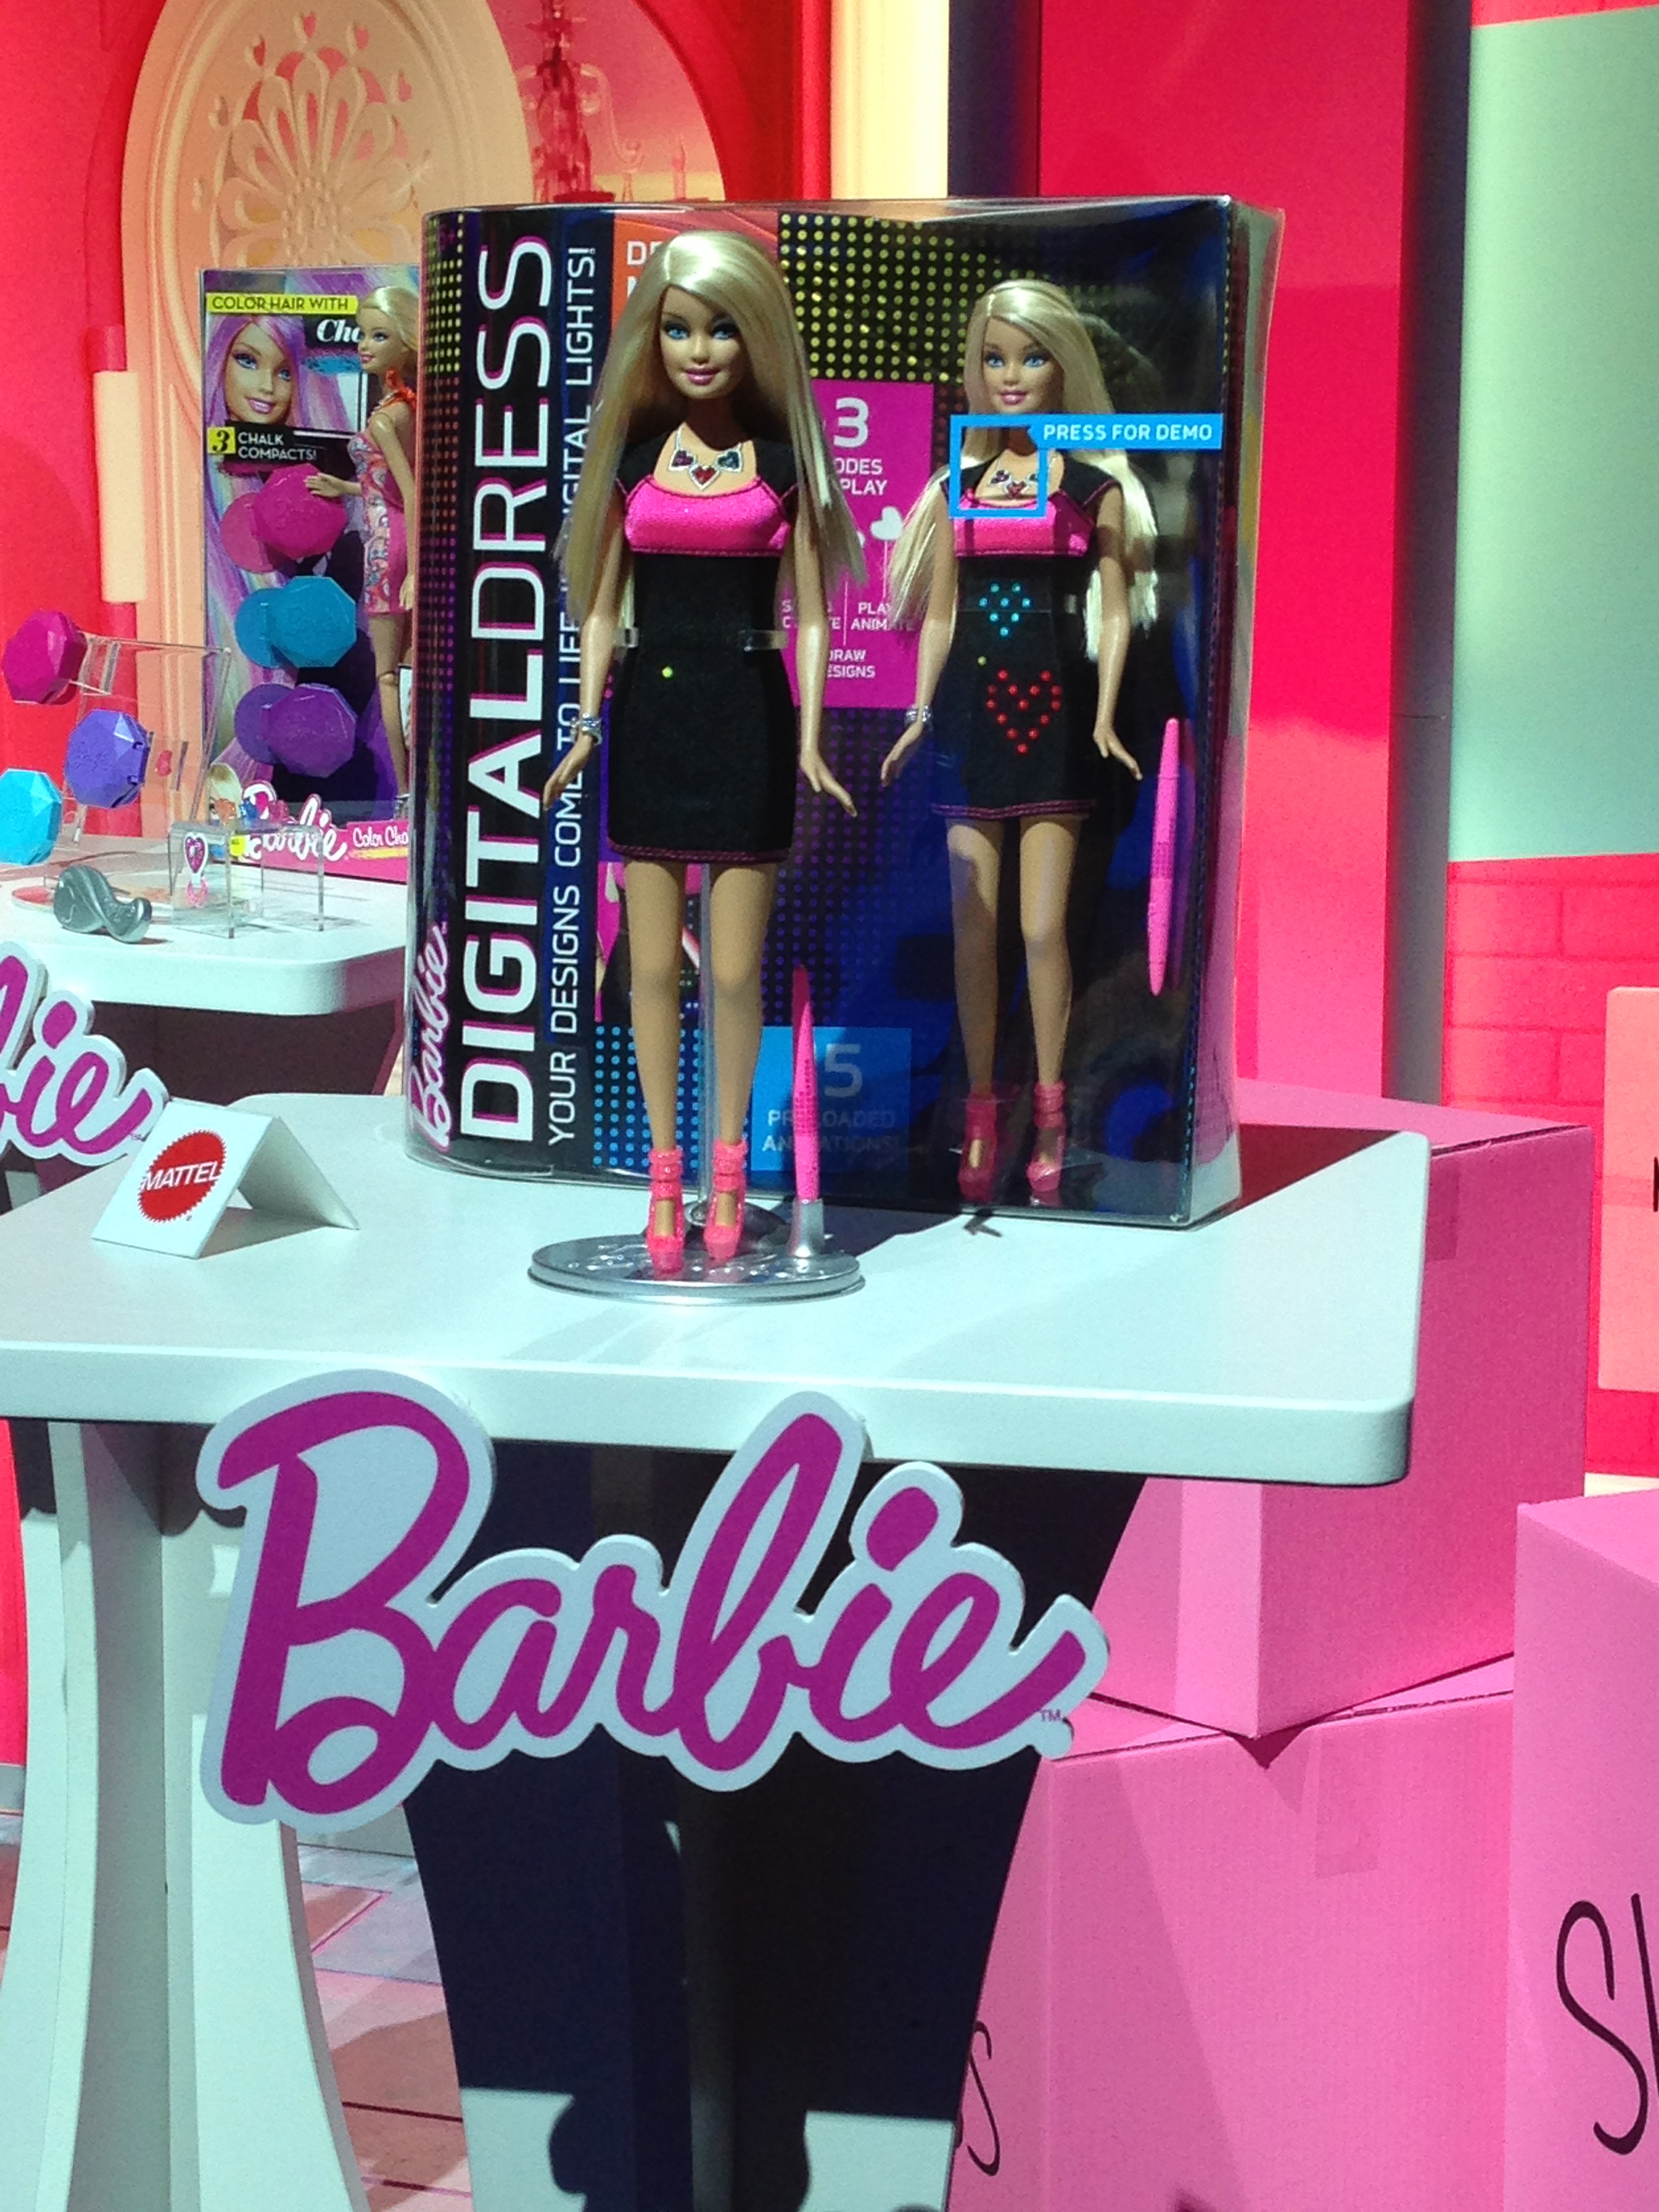 Barbie's dress goes digital for 2013 with its light-up functionality.